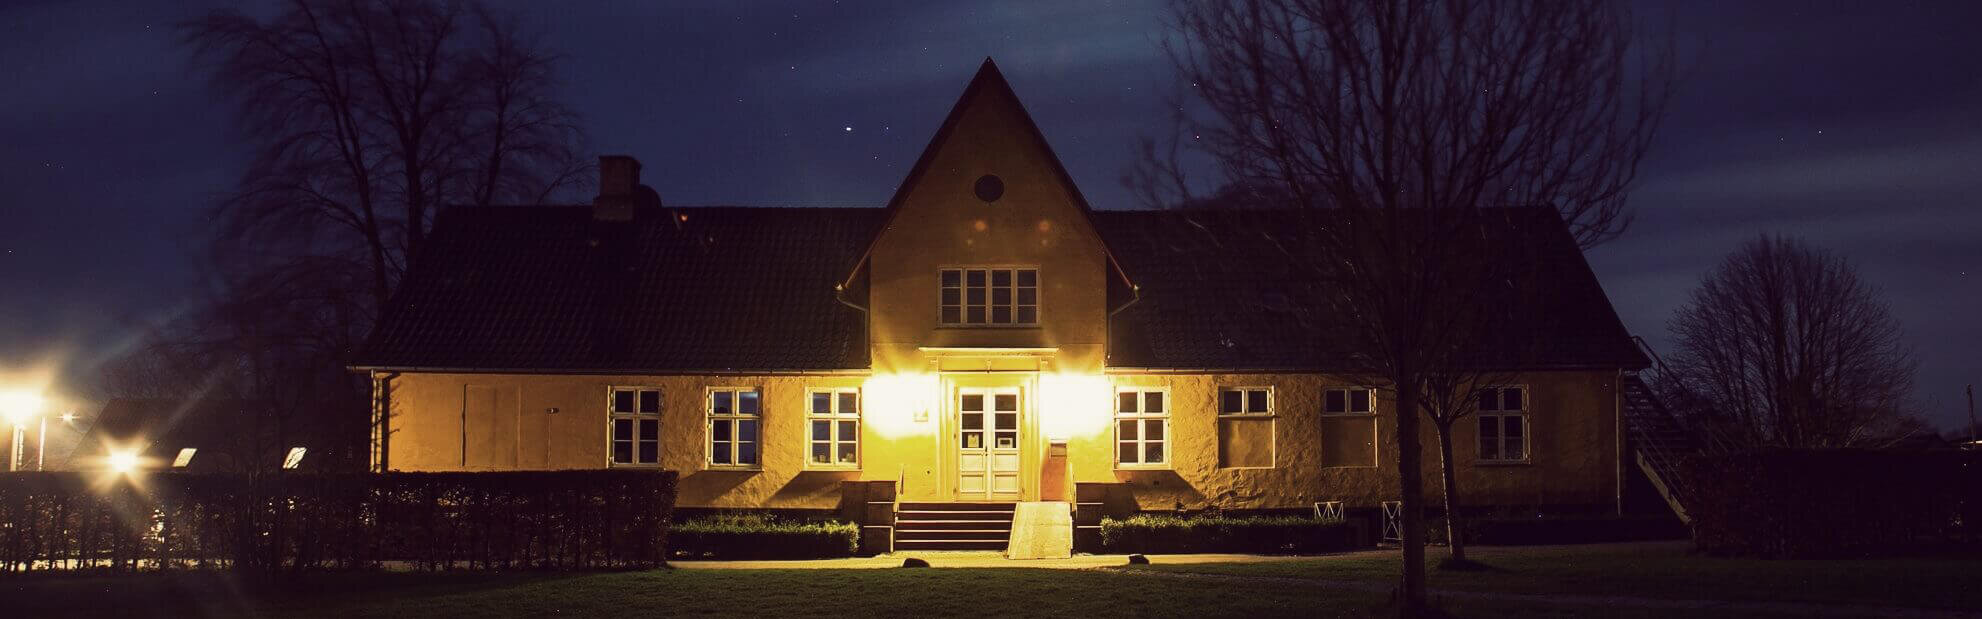 International People's College facilities at night - a folk high school in Denmark